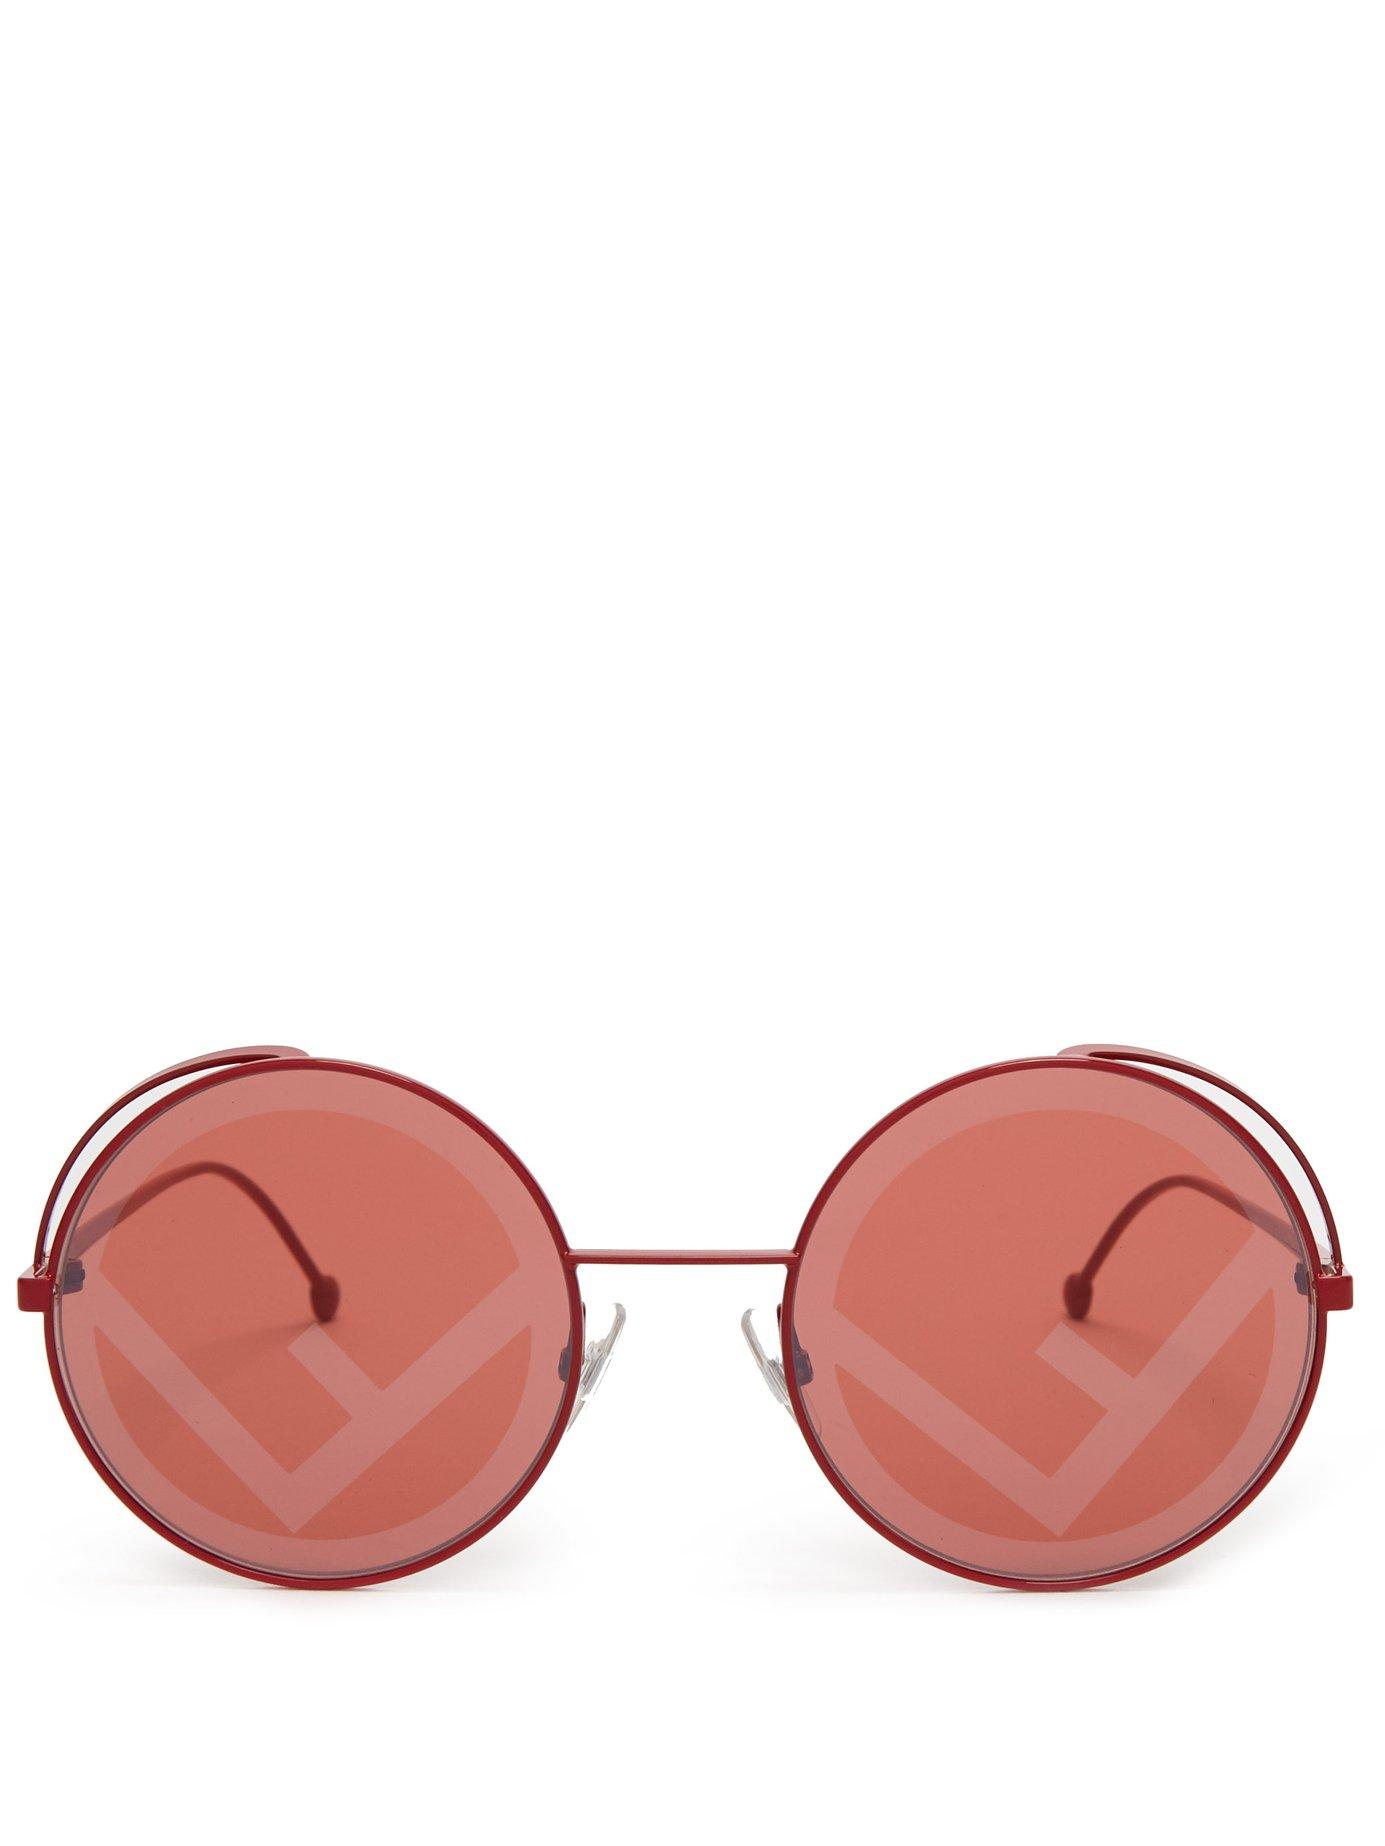 90a5d8ad6b Lyst - Fendi Rama Rounded Frame Metal Sunglasses in Red